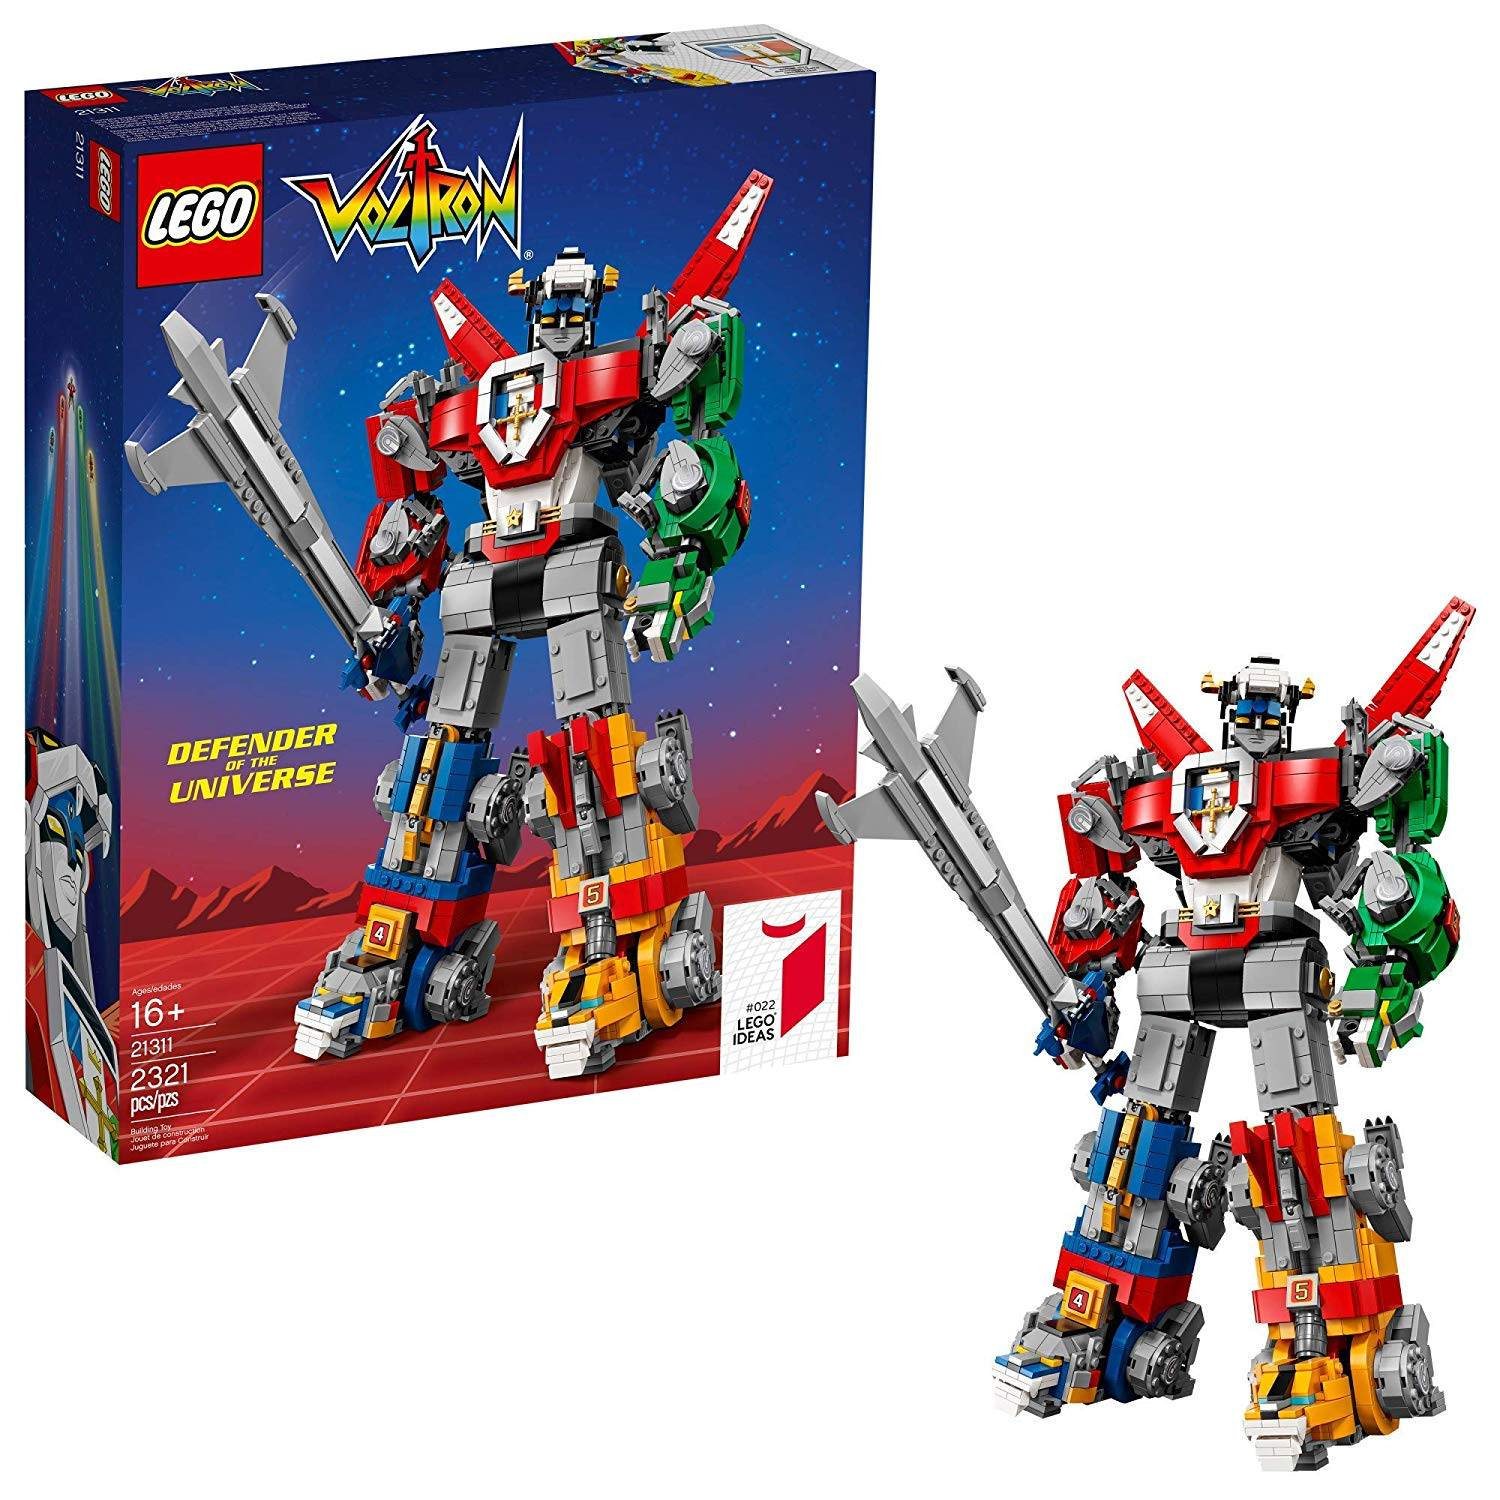 The LEGO Ideas Voltron Build Kit